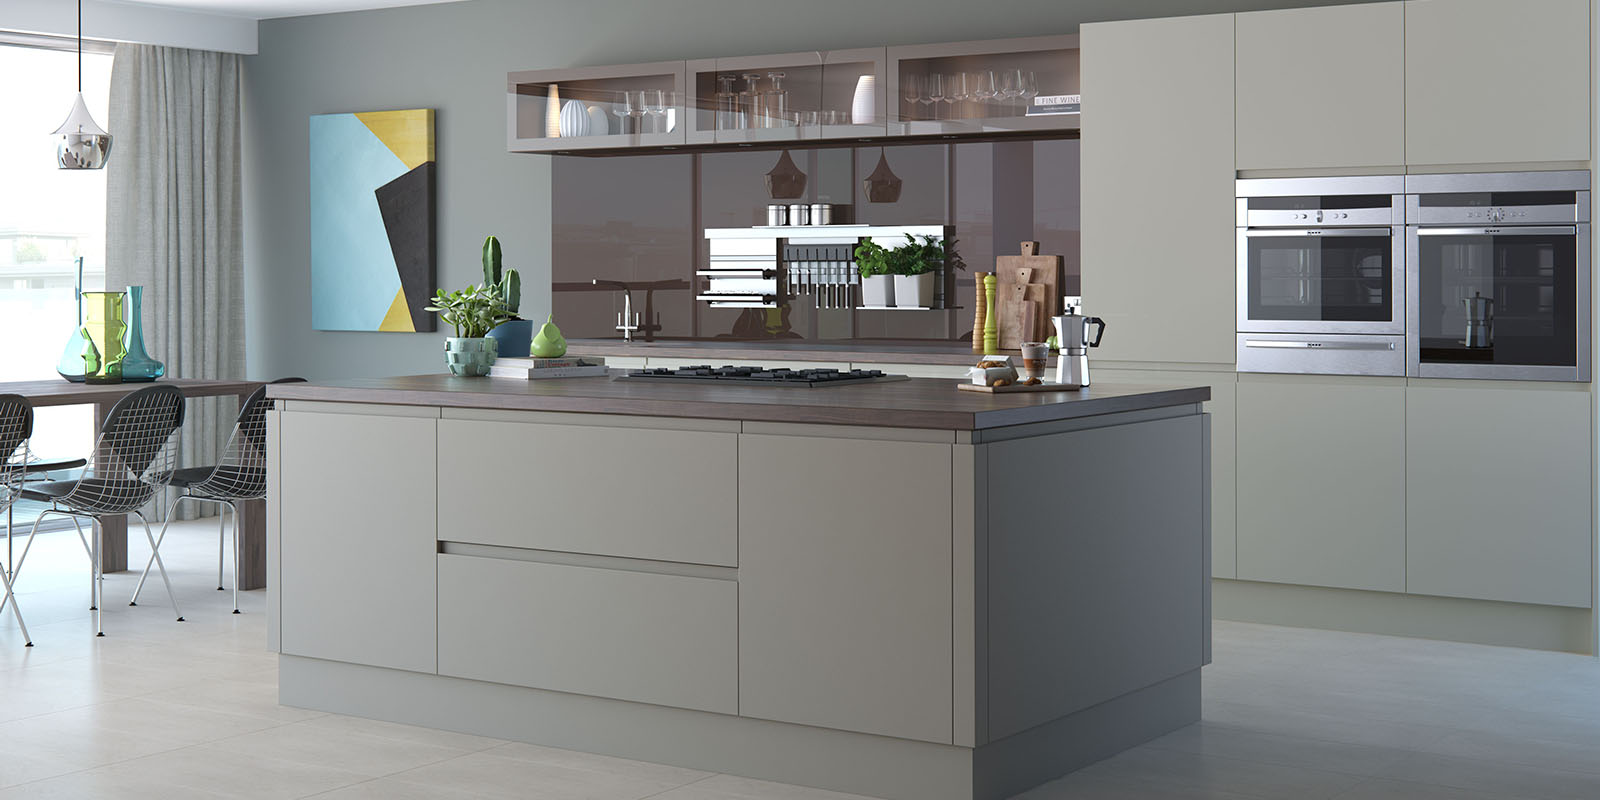 kitchens and much more bespoke kitchen design and fitting in a handle less kitchen